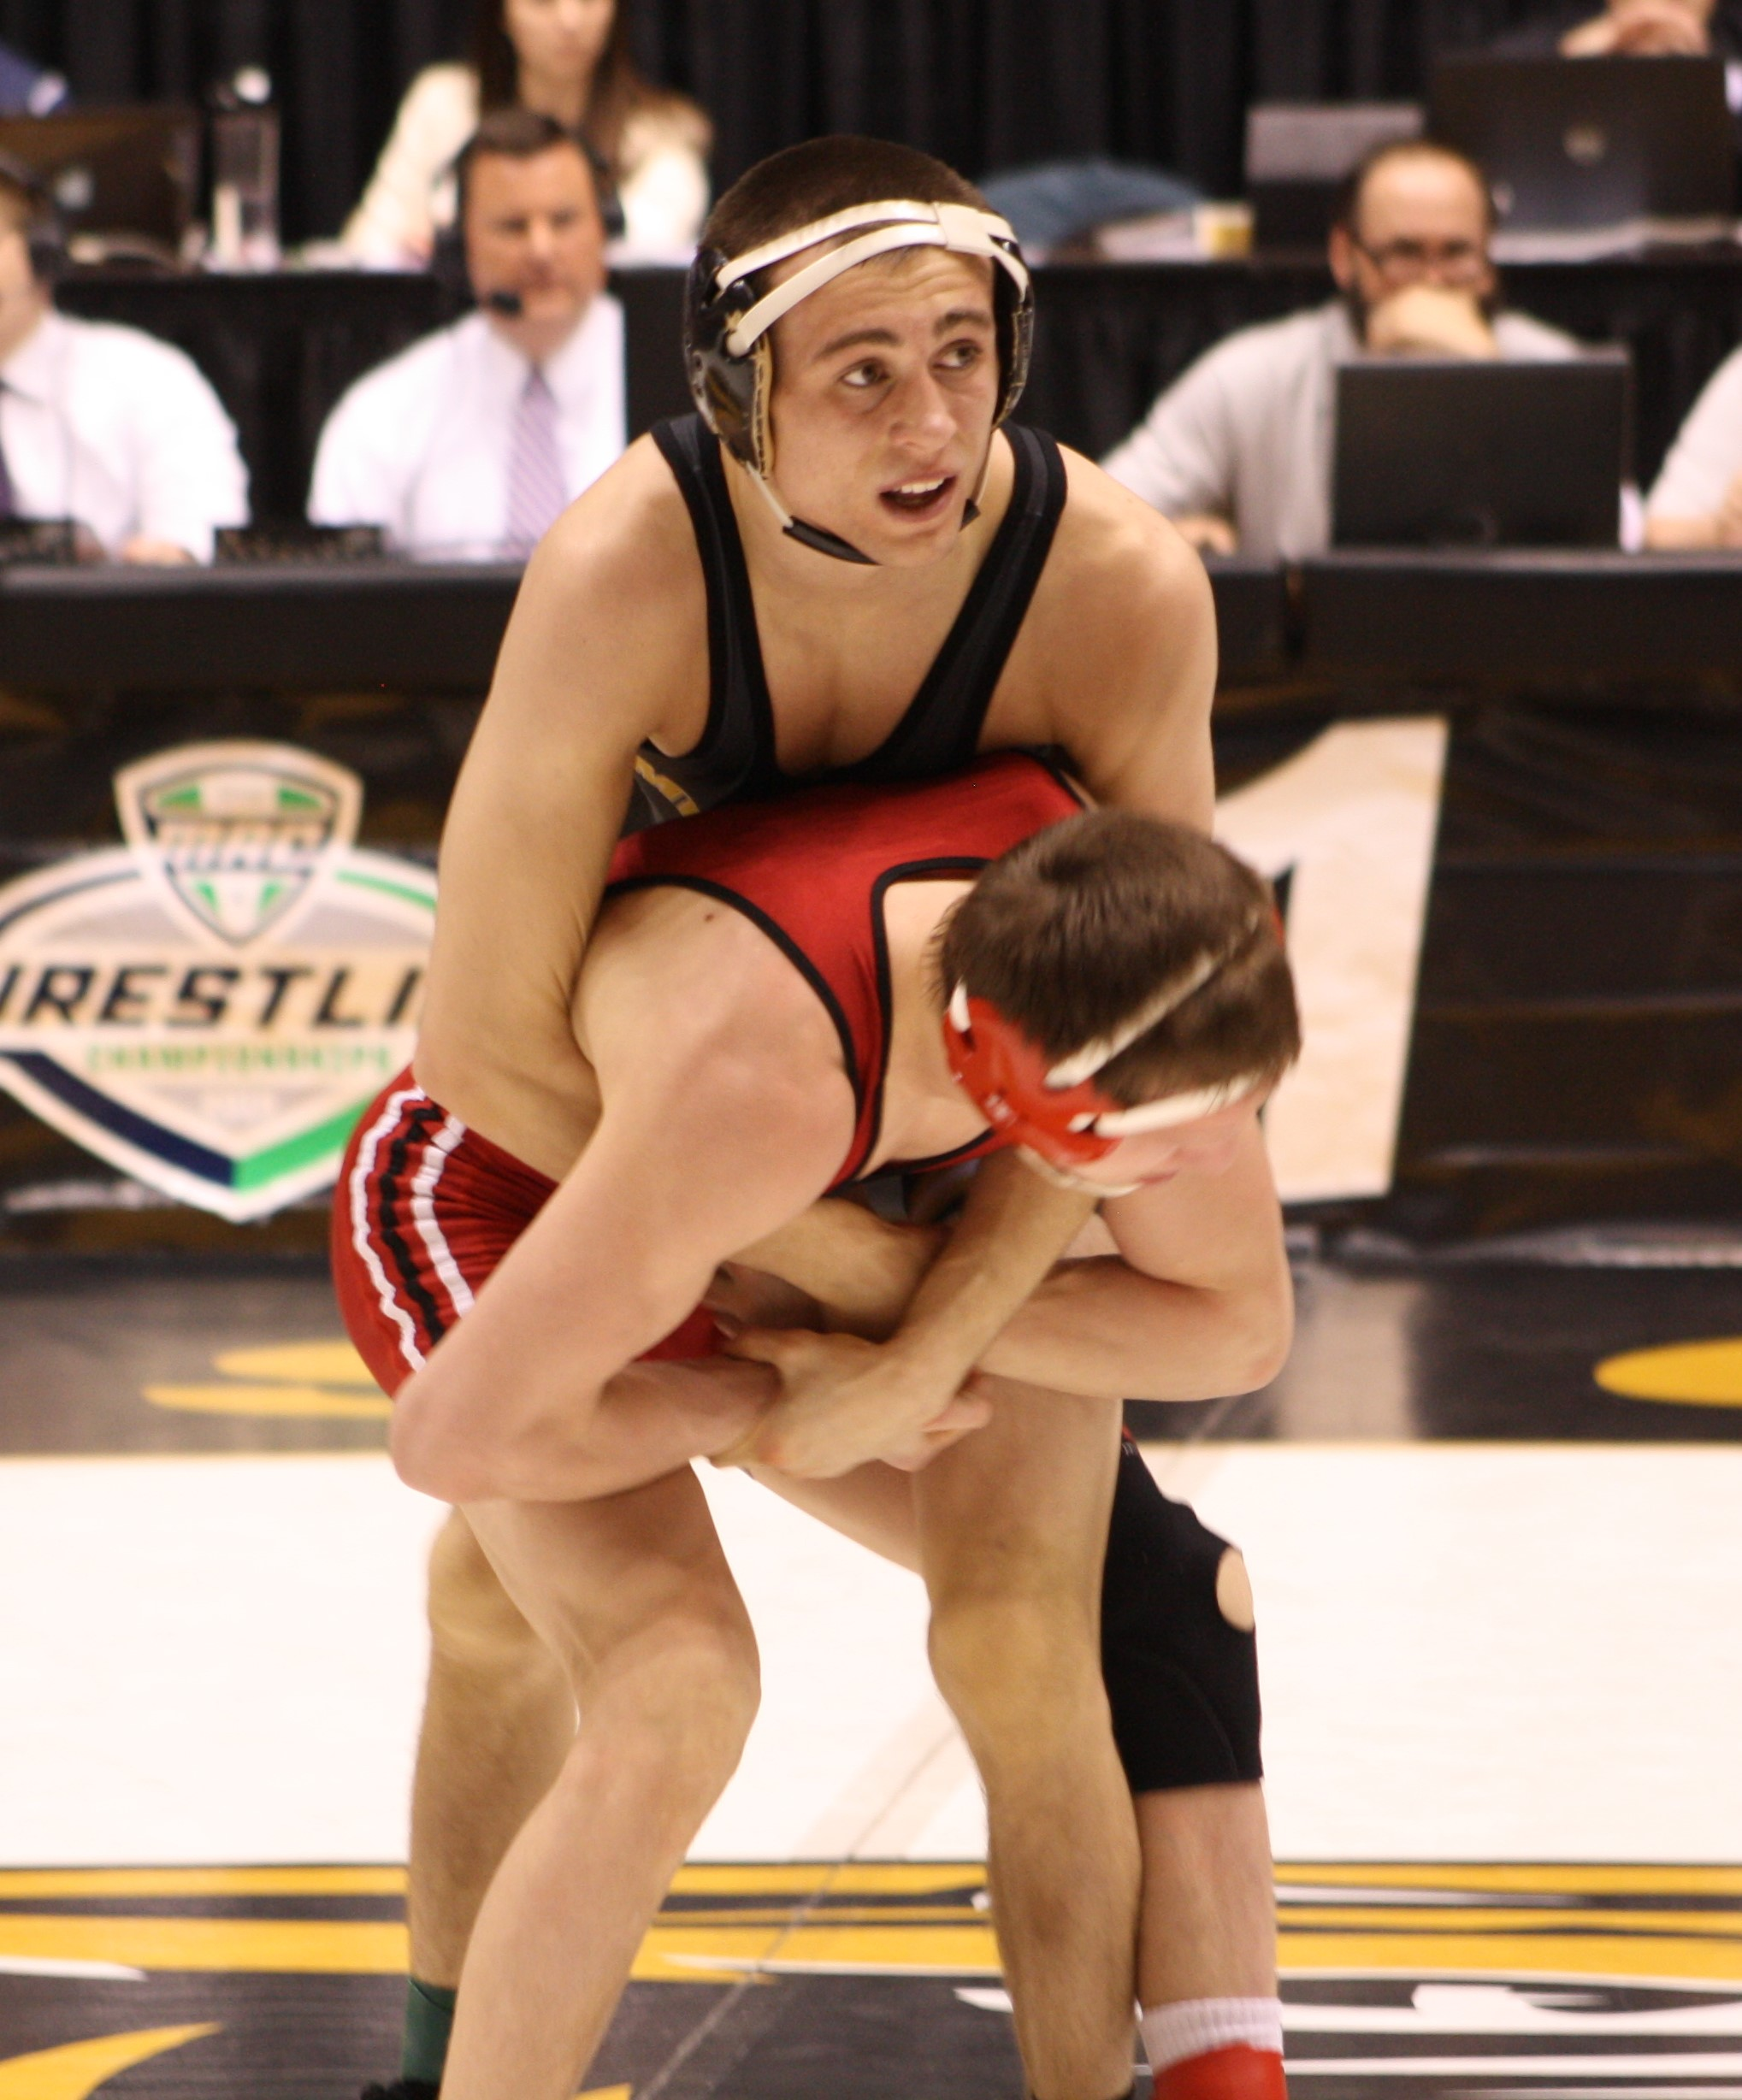 Zach Synon is one of two wrestlers who are ranked at the top of their weight class in the MAC rankings